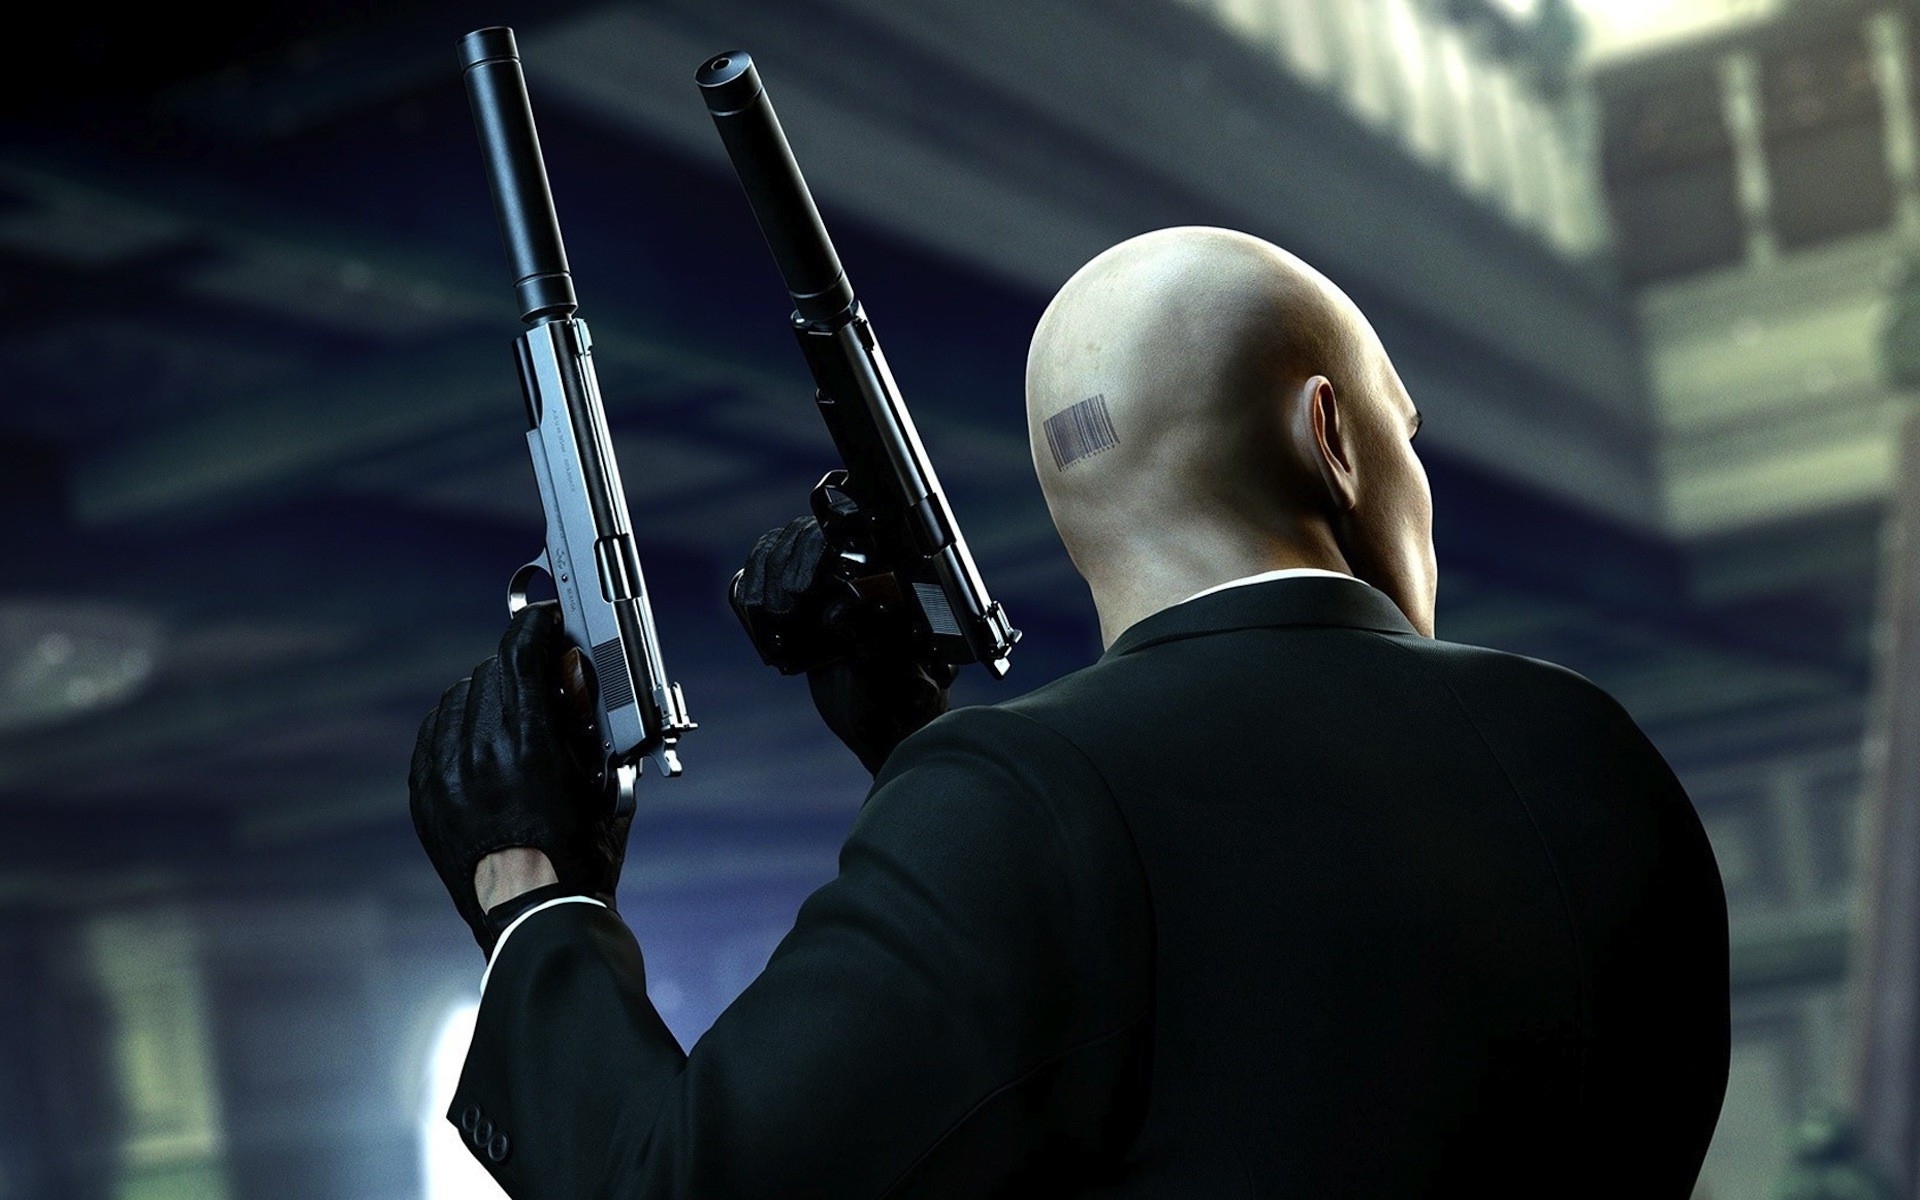 44 Hitman Agent 47 Wallpaper On Wallpapersafari